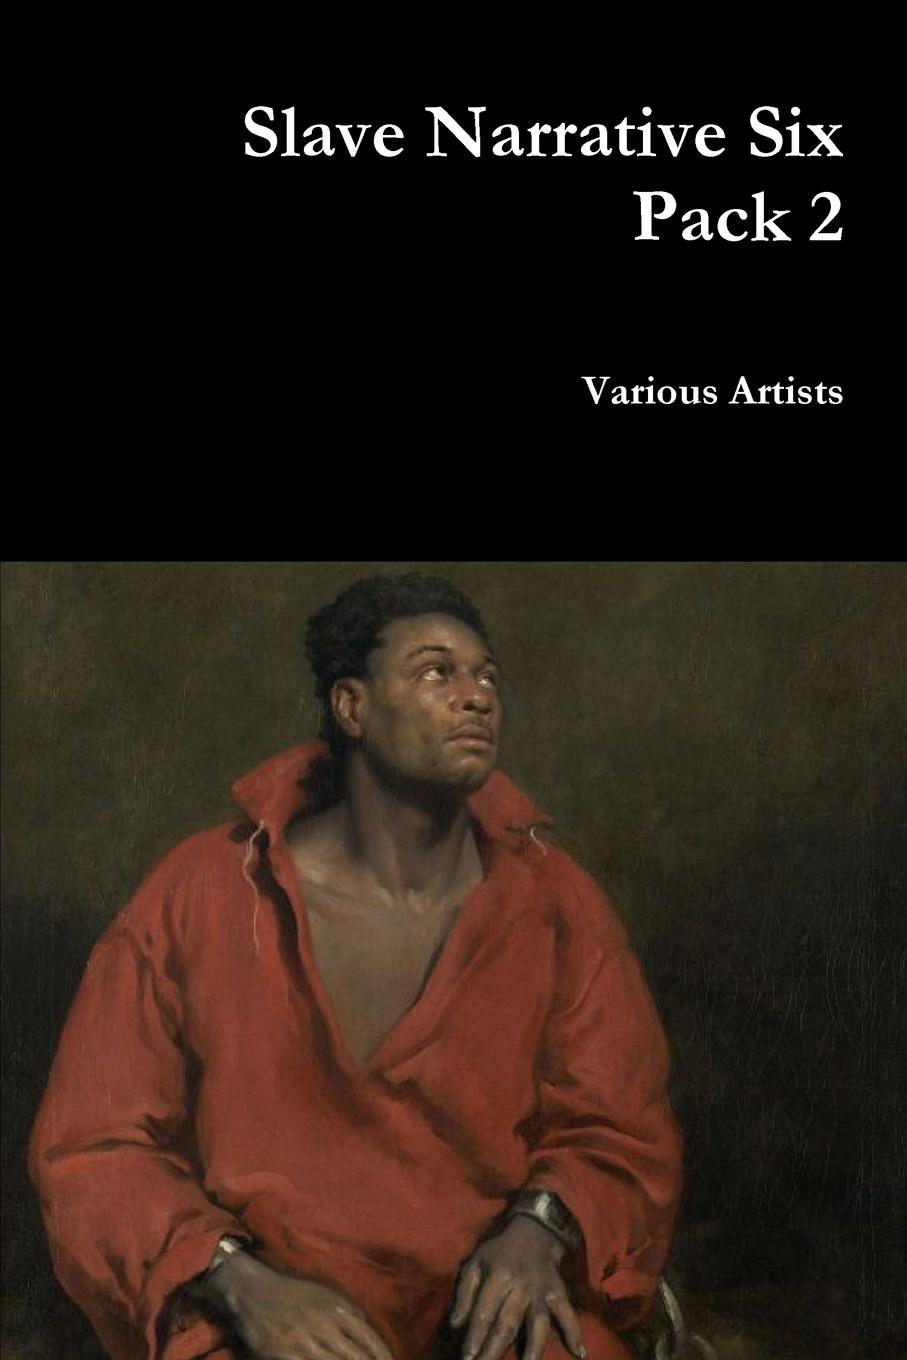 Various Artists Slave Narrative Six Pack 2 charles ball fifty years in chains or the life of an american slave